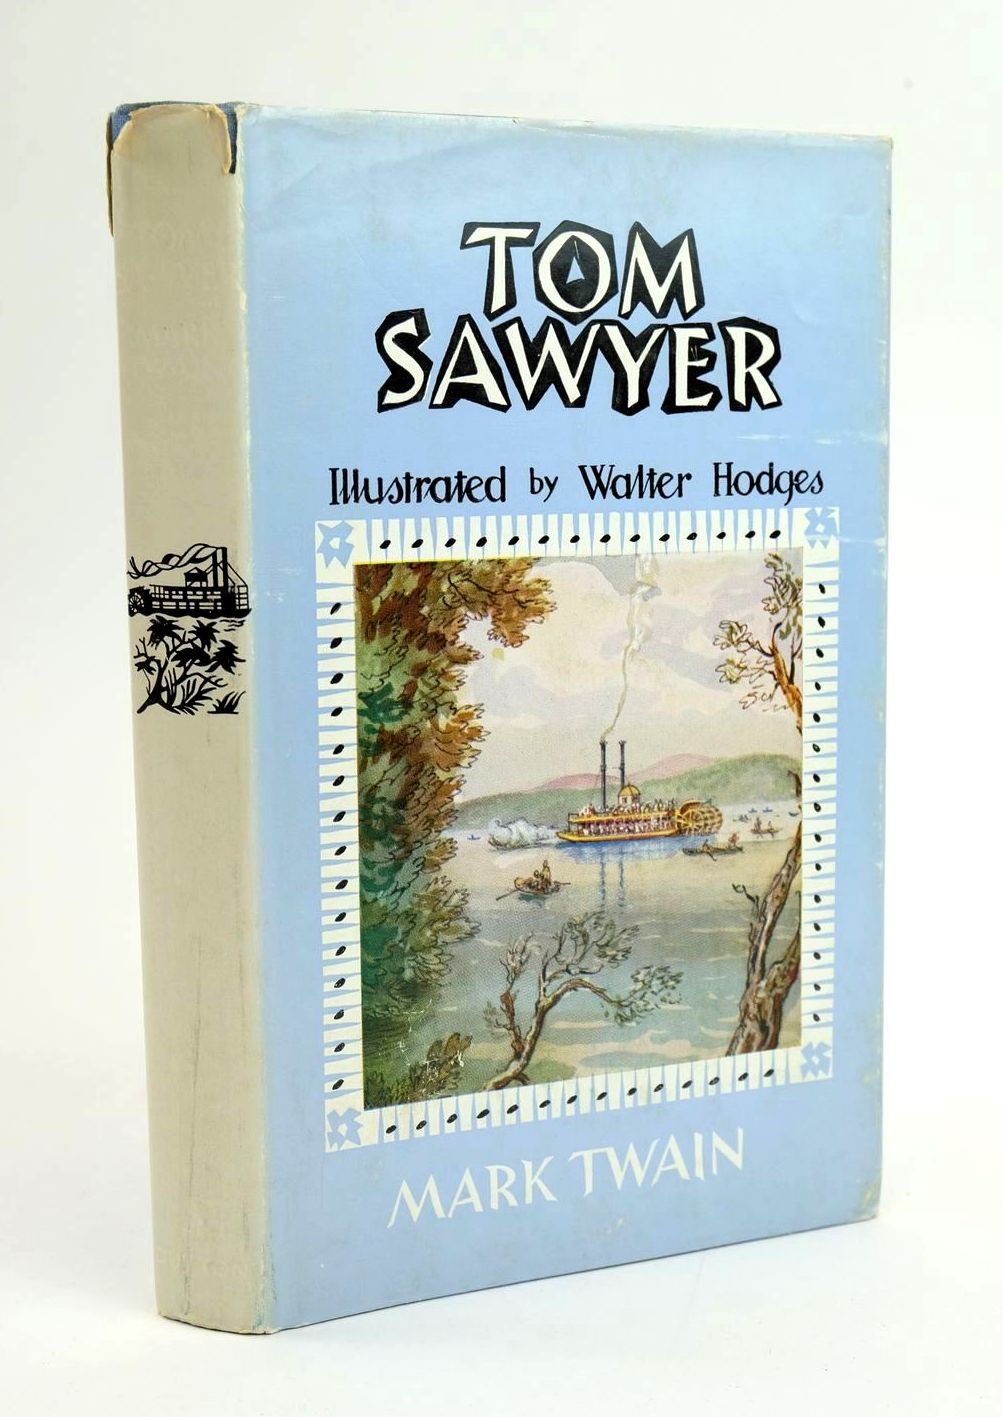 Photo of THE ADVENTURES OF TOM SAWYER written by Twain, Mark illustrated by Hodges, C. Walter published by J.M. Dent & Sons Ltd. (STOCK CODE: 1319222)  for sale by Stella & Rose's Books